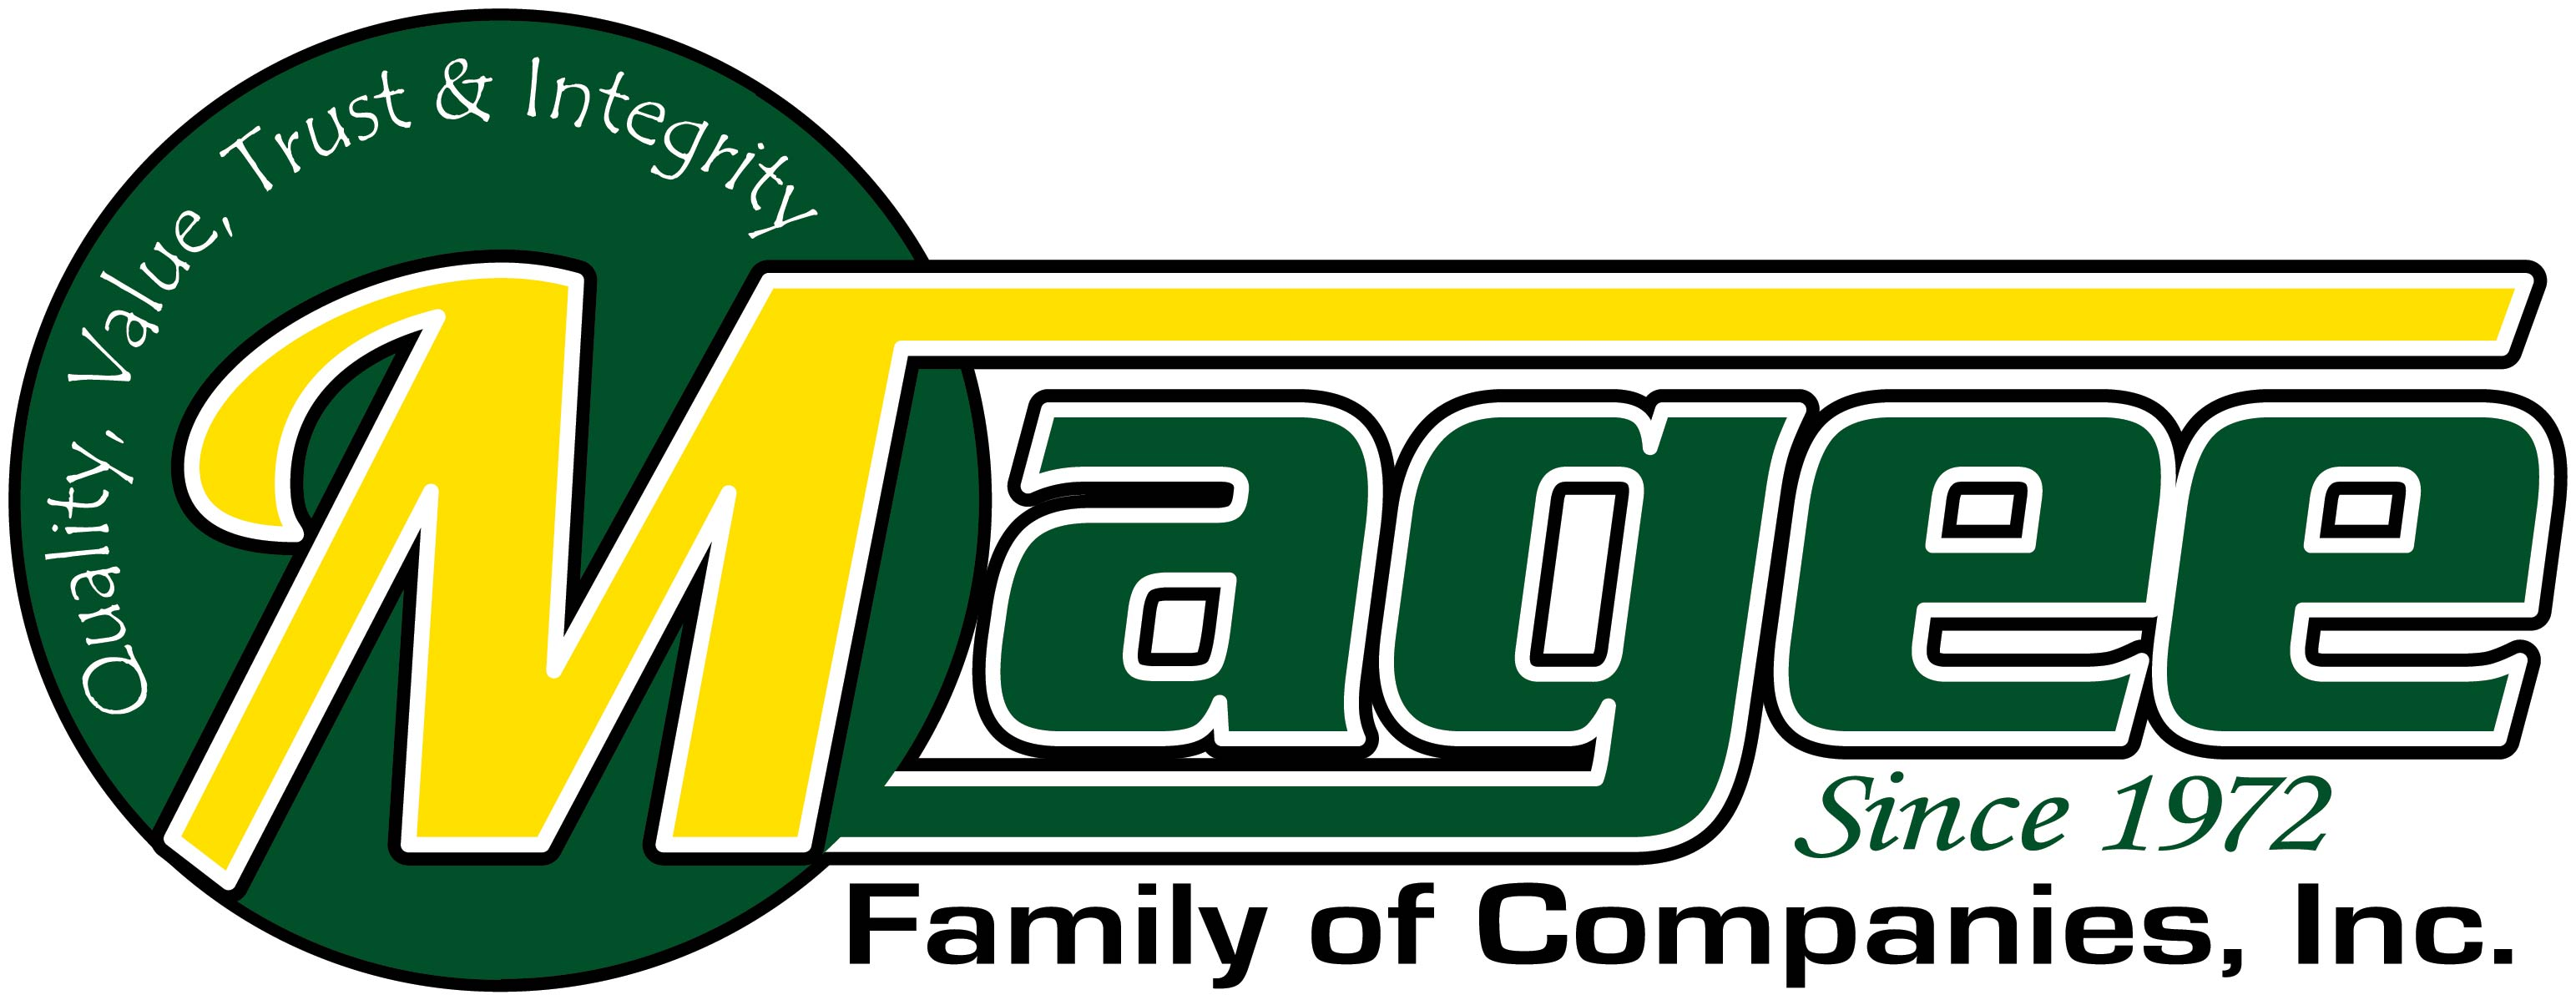 The Magee Family of Companies